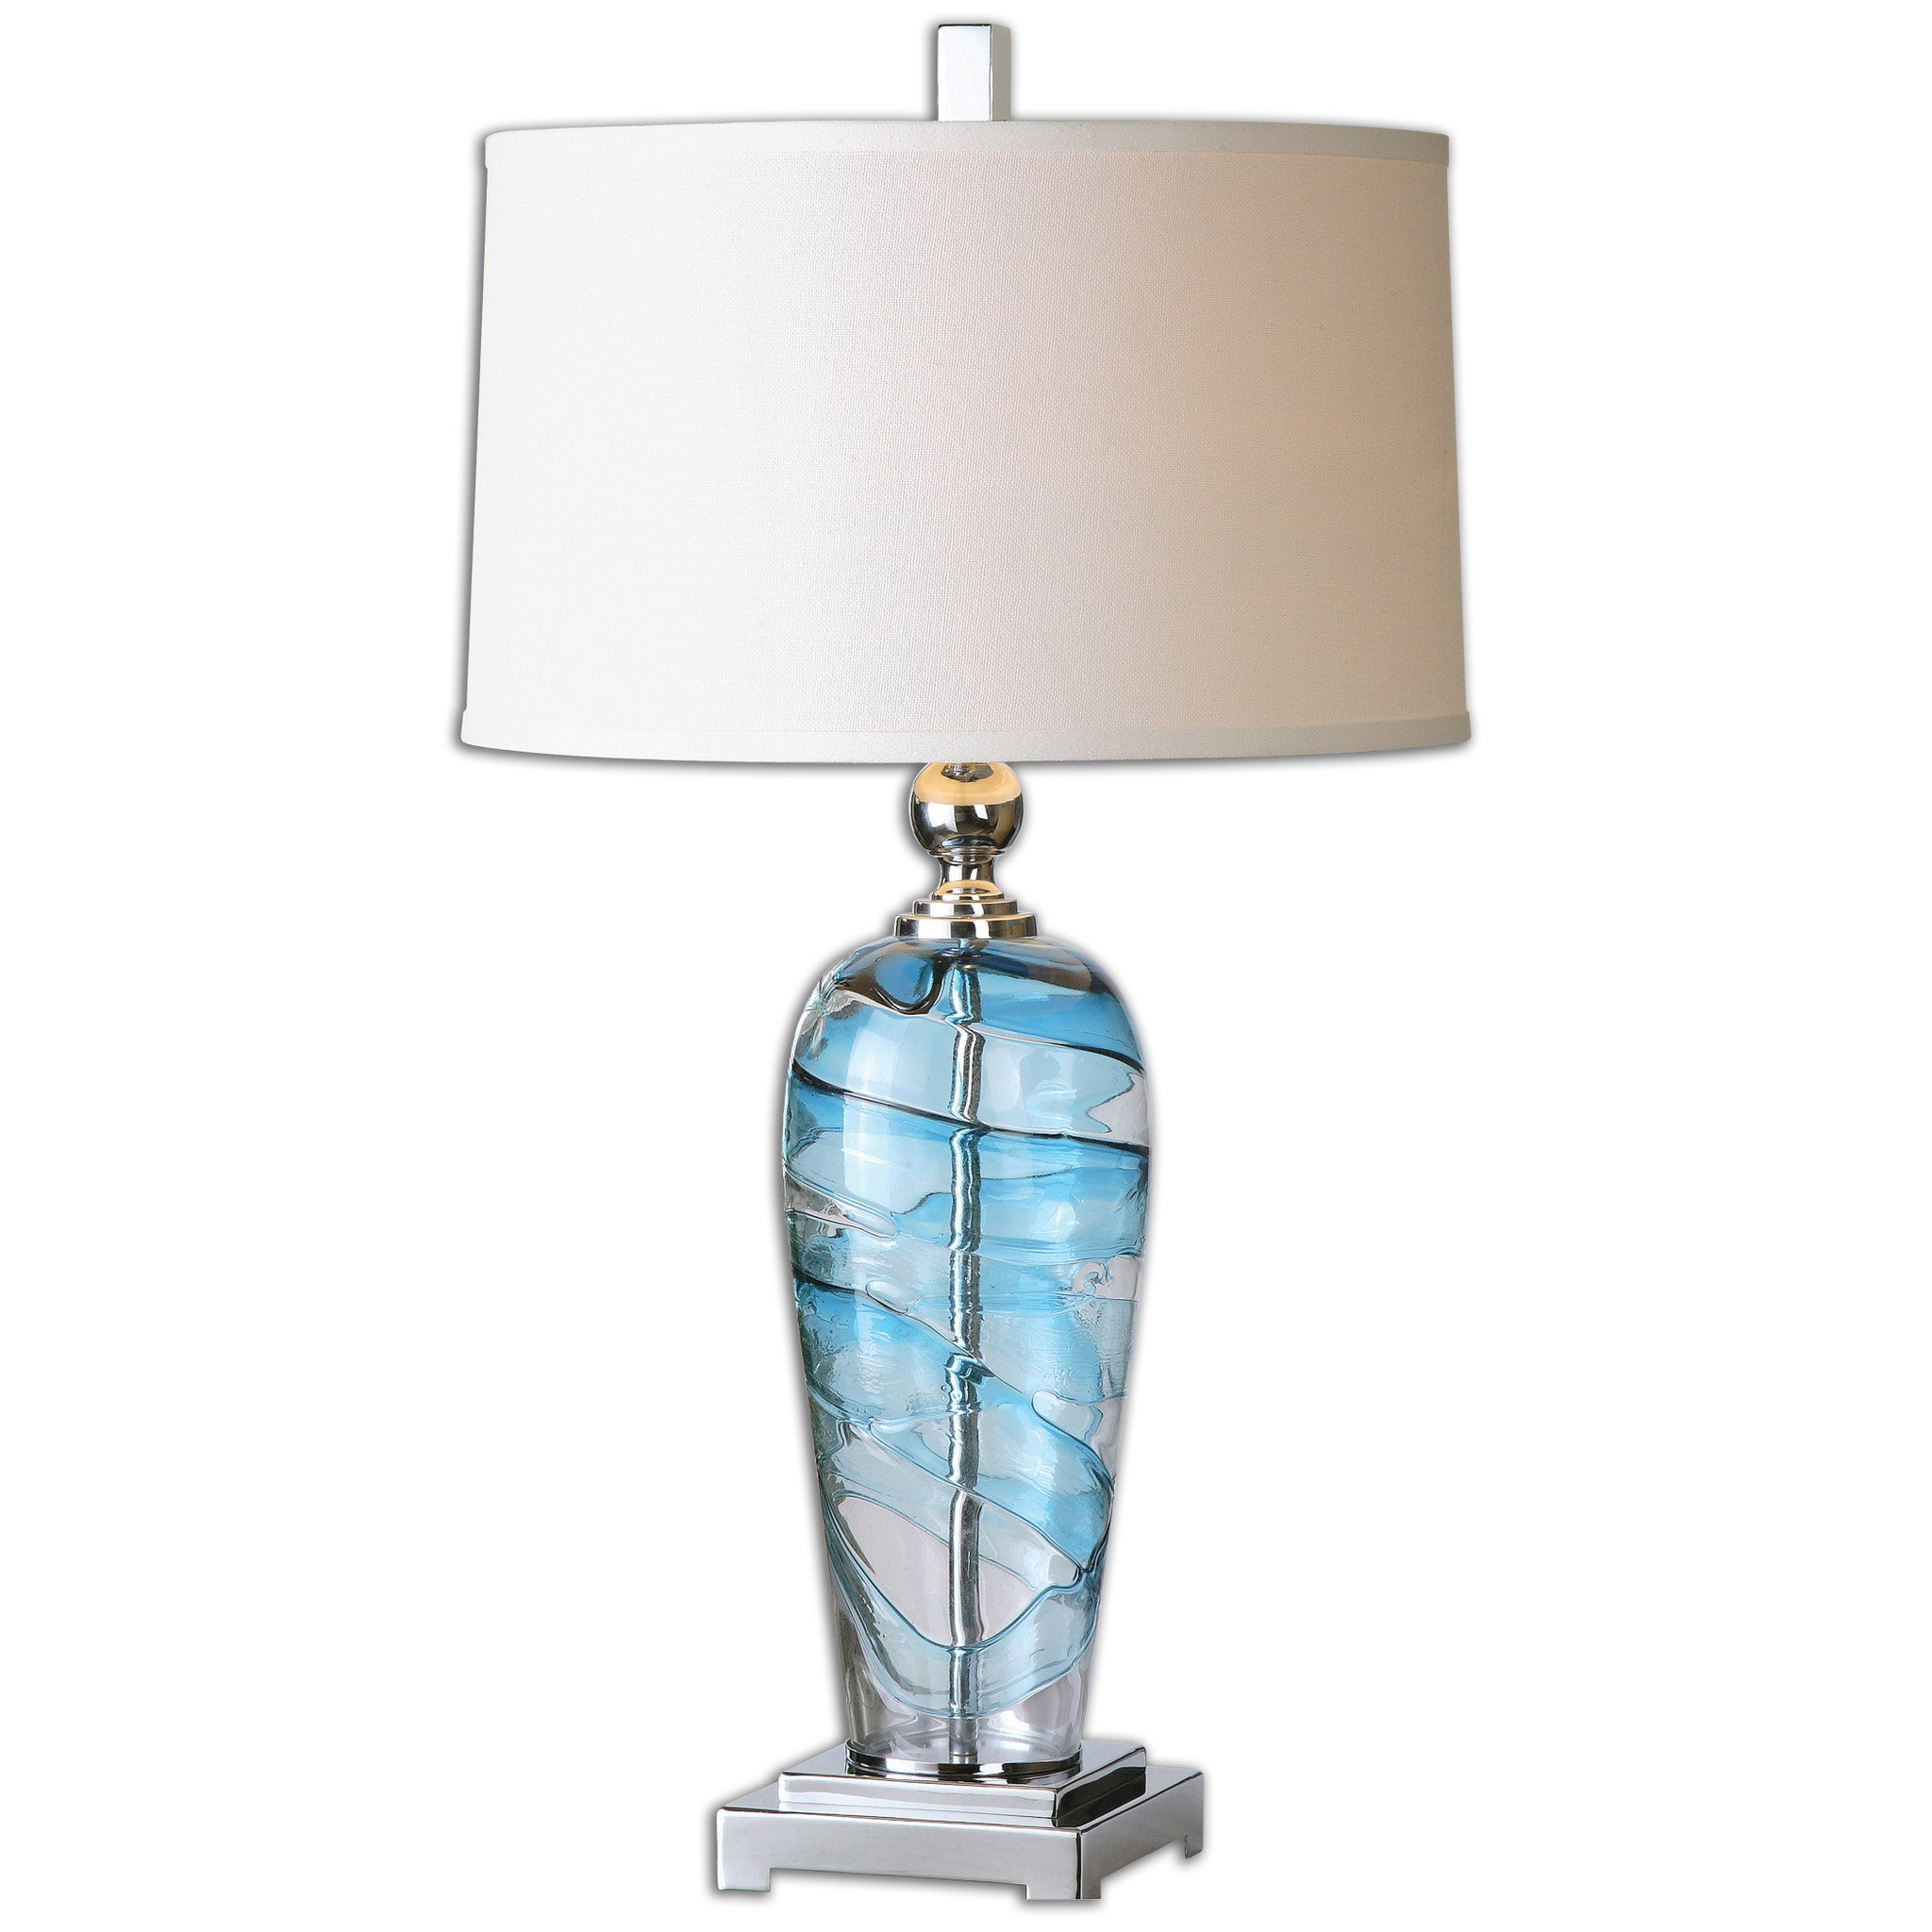 Blown, clear and blue glass accented with polished nickel plated details. The slightly tapered round hardback shade is a crisp white linen fabric.